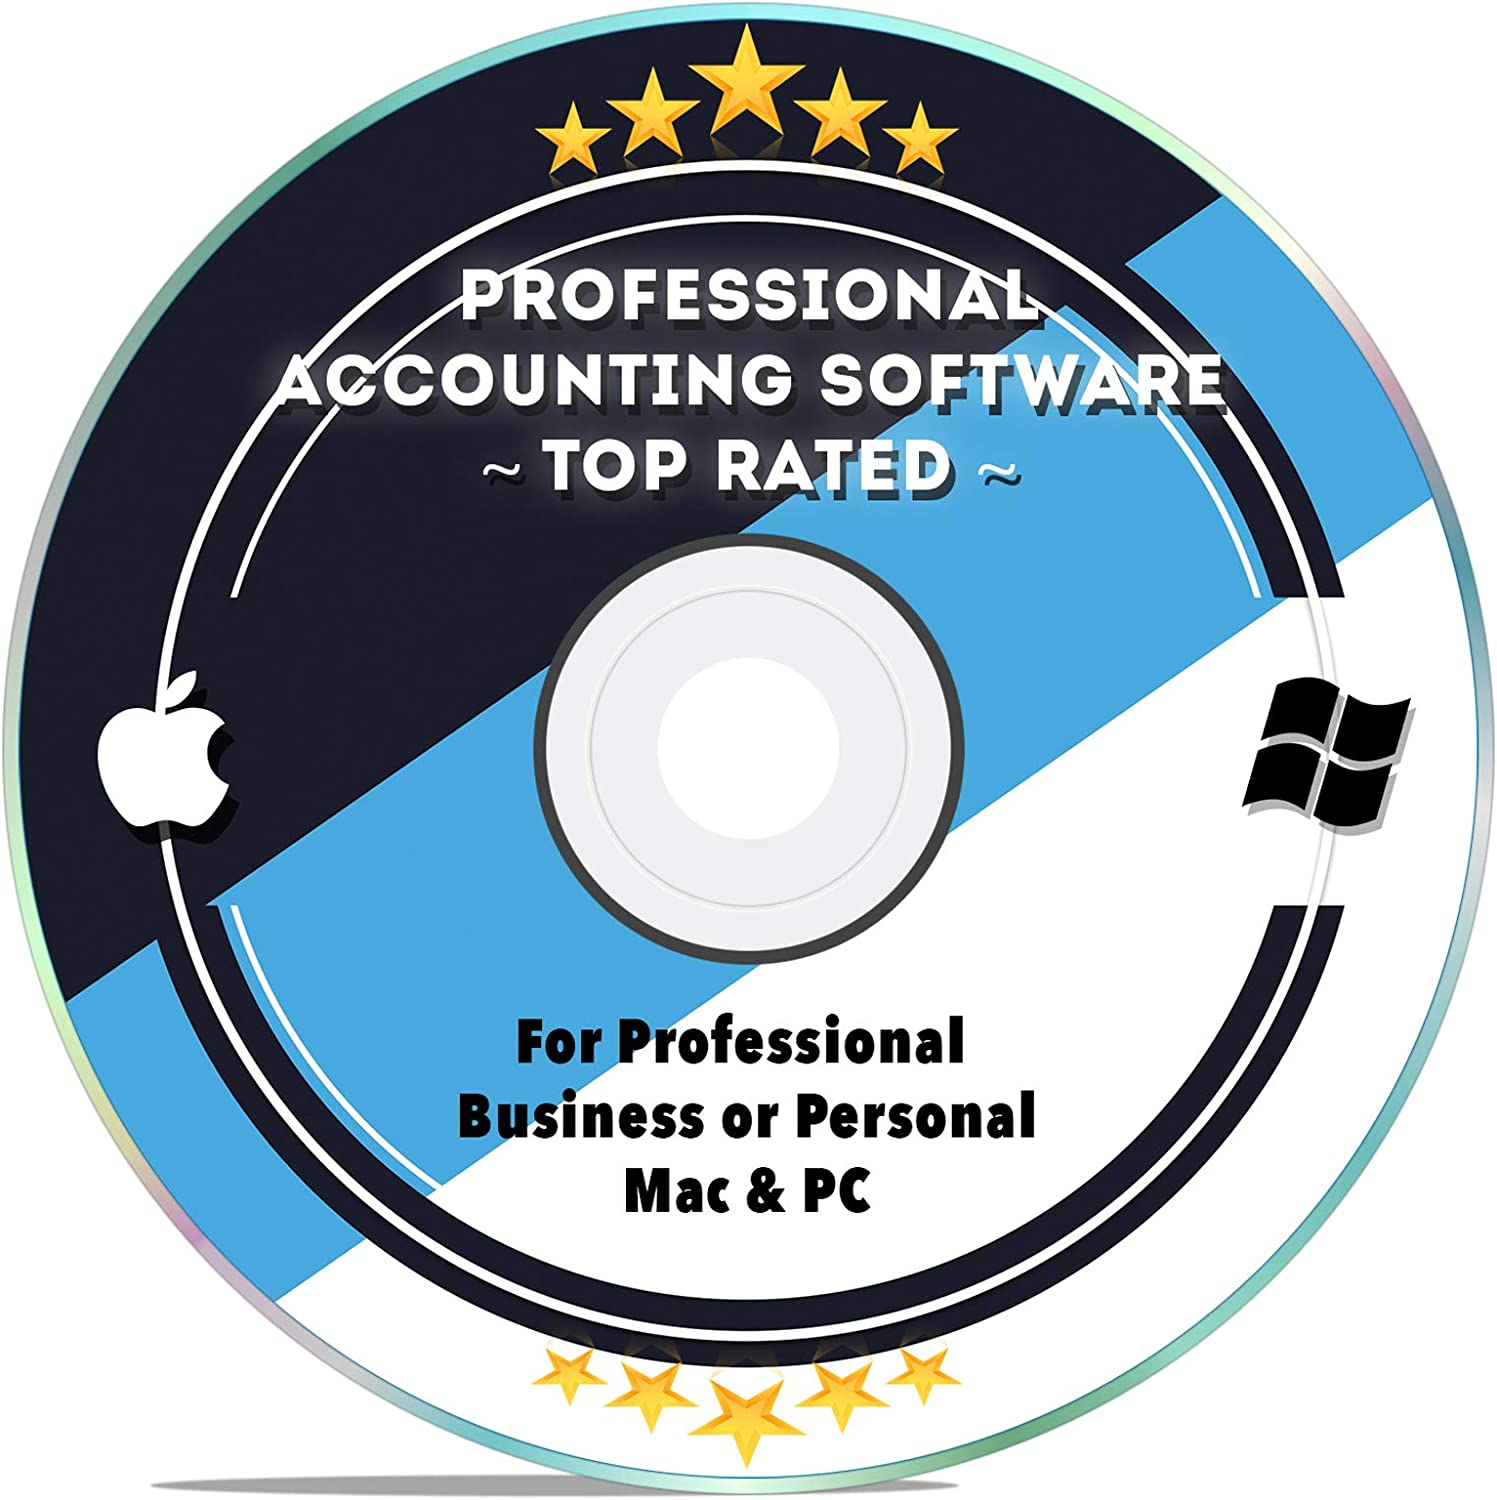 Accounting Bookkeeping Tax Preparation Software for Small Business, Personal, Home 2018 2019 Simple for Windows PC & MAC Computers CD Disk 71KLEOp6cyL